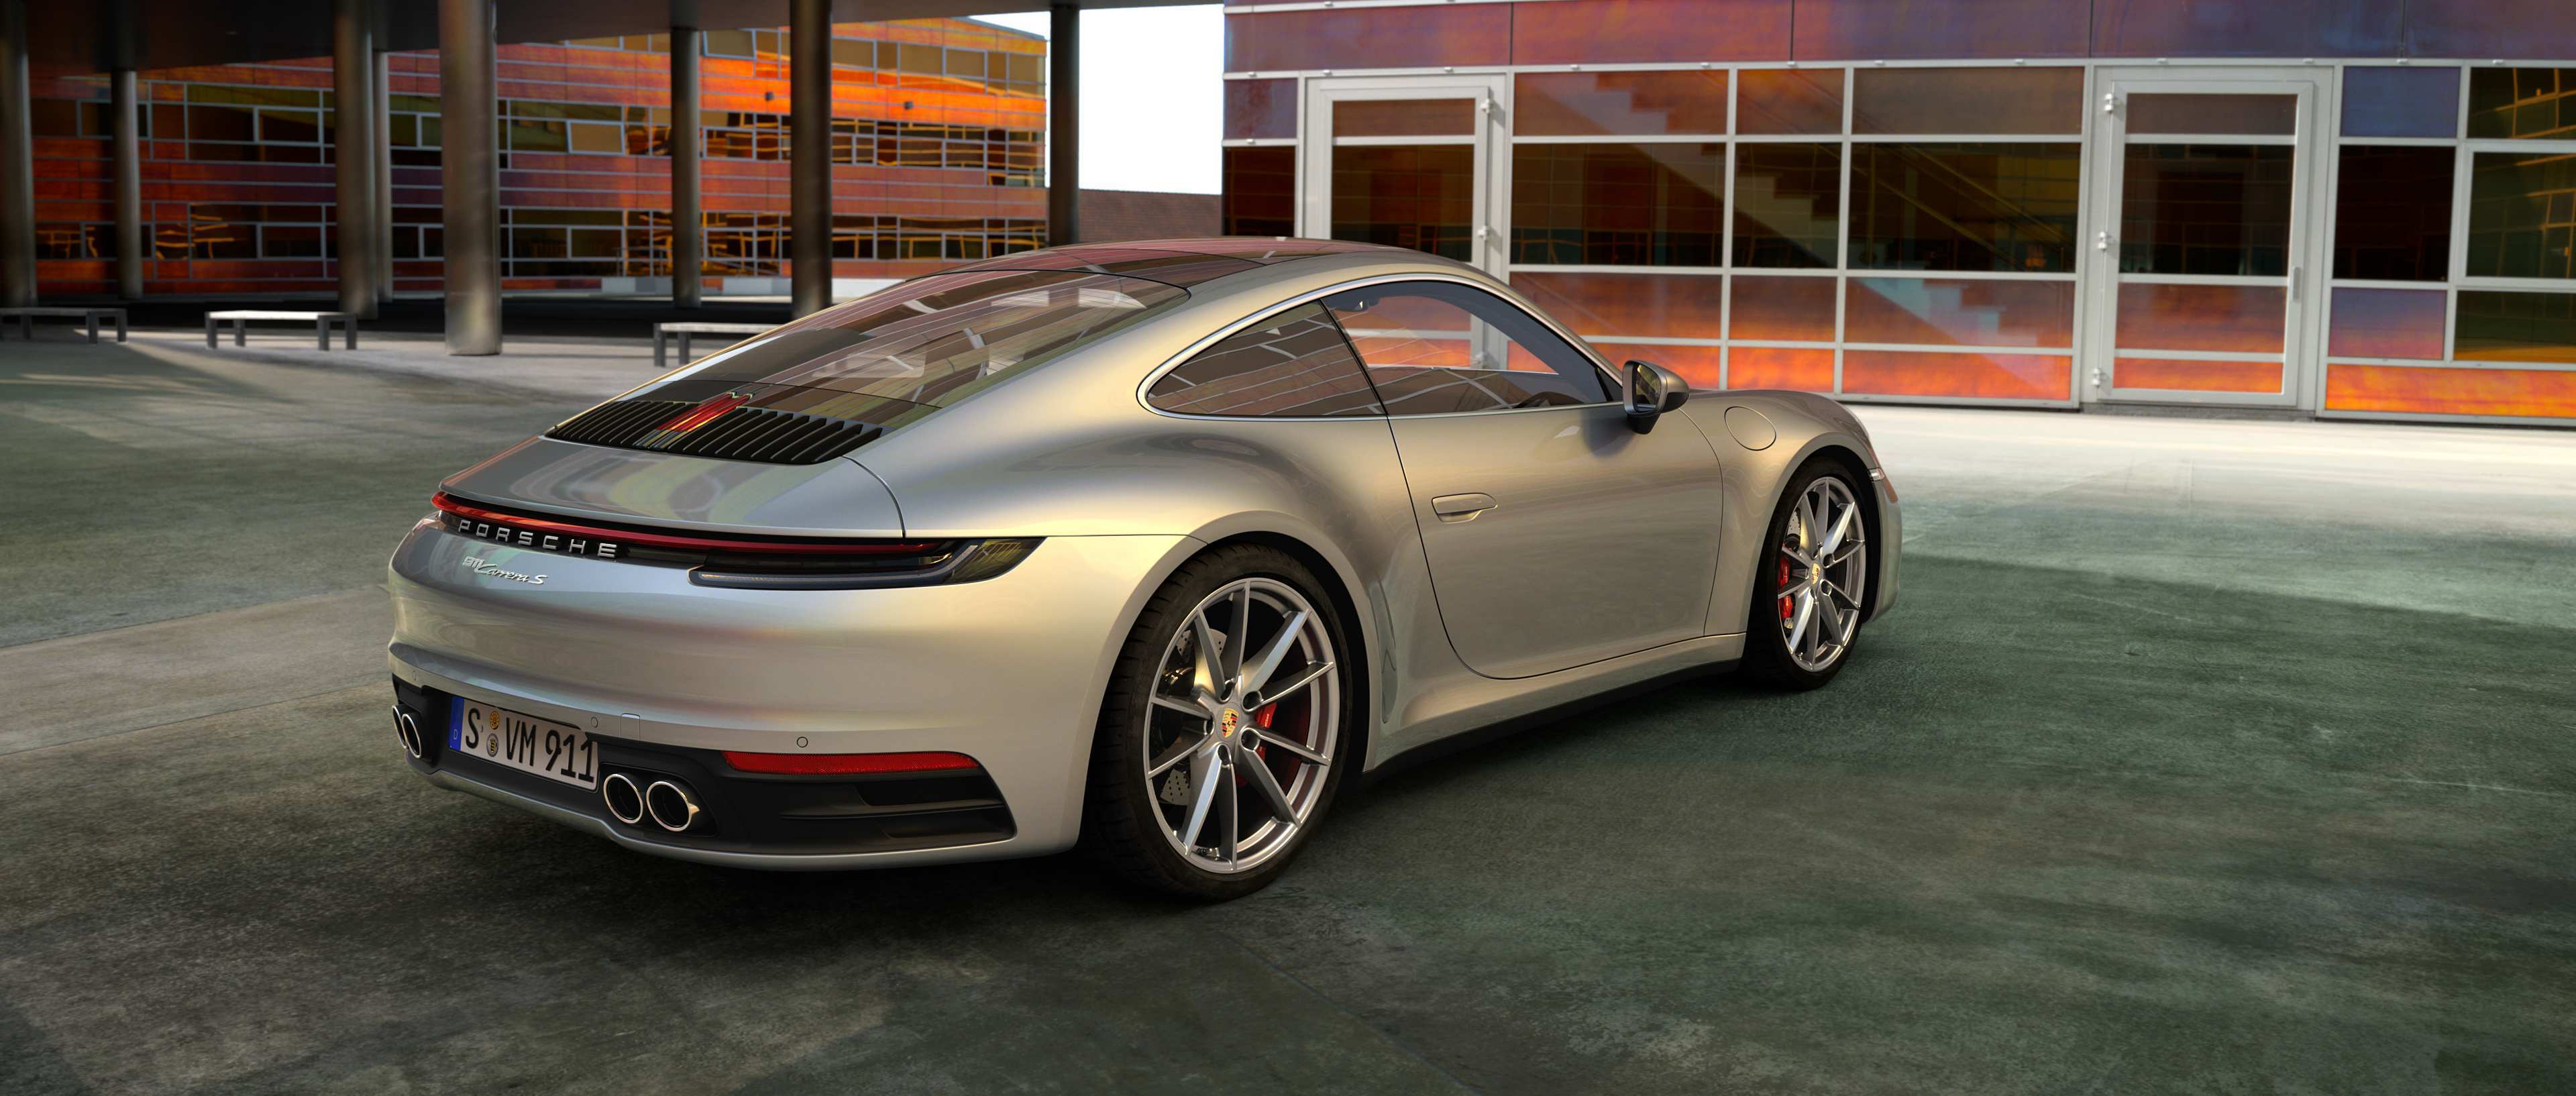 31 All New 2019 Porsche 911 Redesign And Review